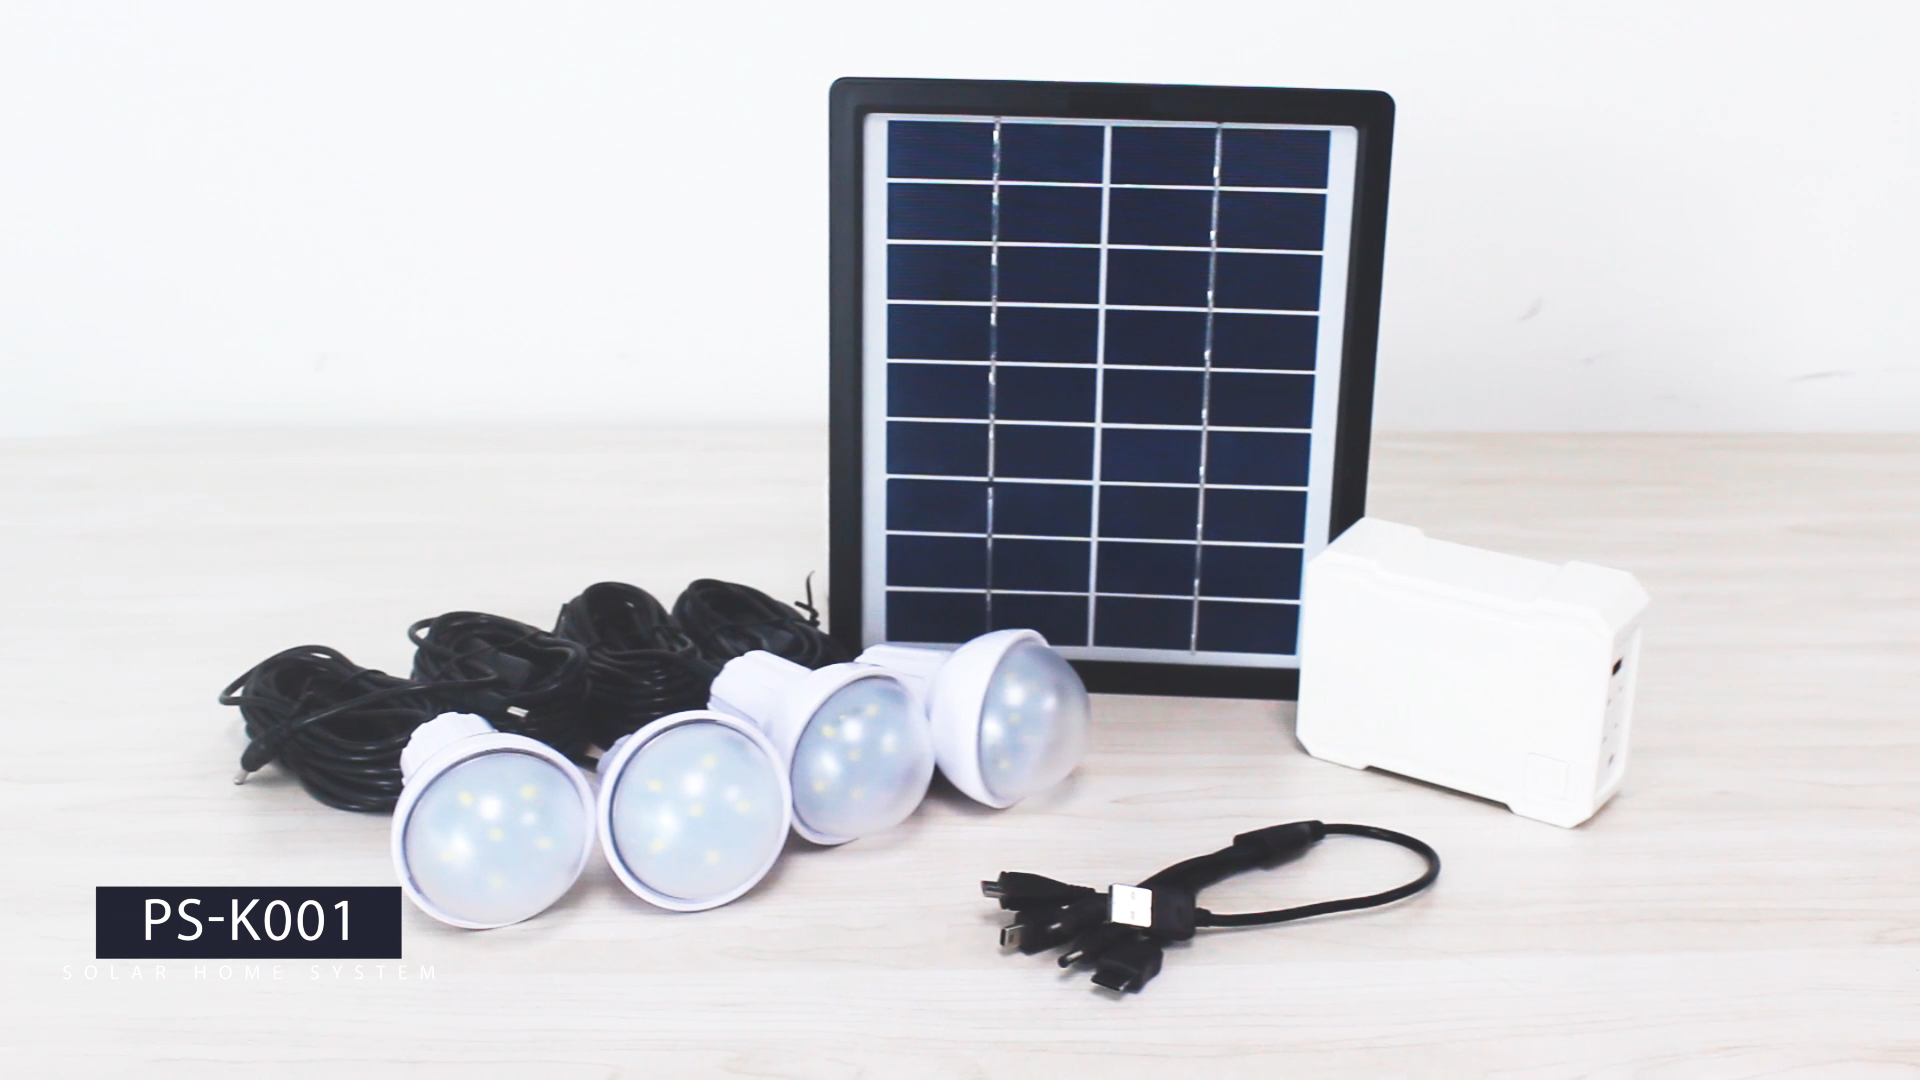 Rechargeable House Converting Complete Off-grid Sun Solar LED Light System Kit For Home Commercial